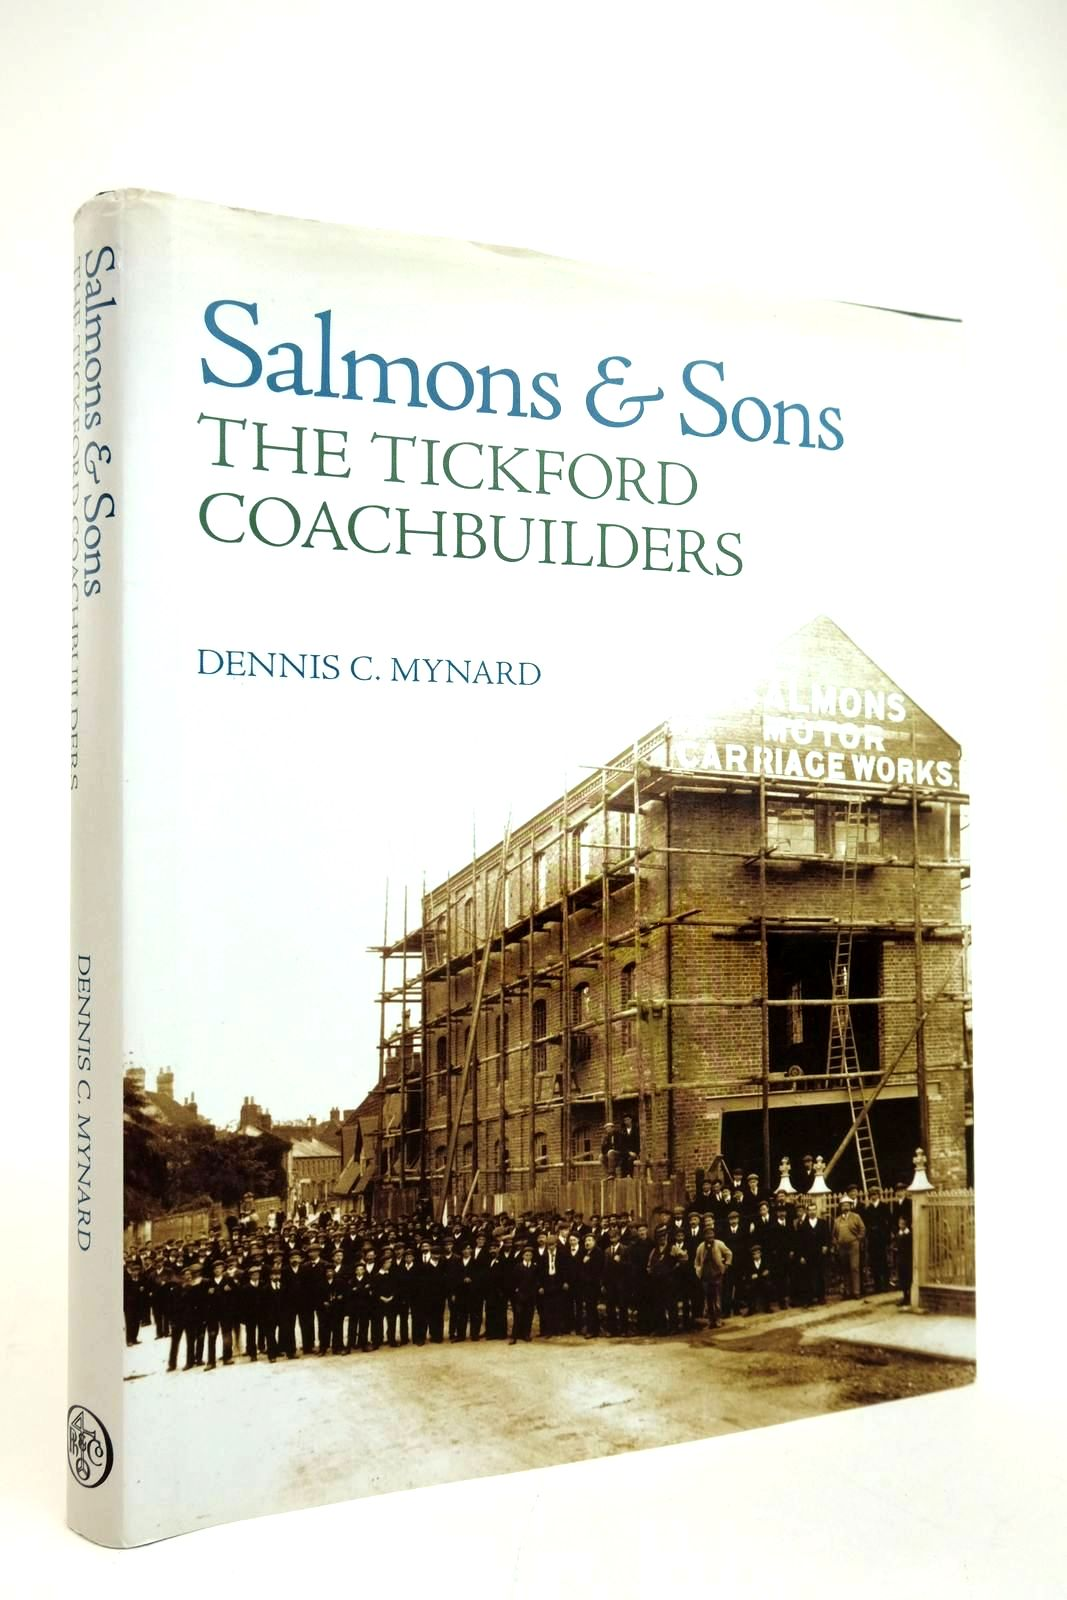 Photo of SALMONS & SONS: THE TICKFORD COACHBUILDERS- Stock Number: 2135135